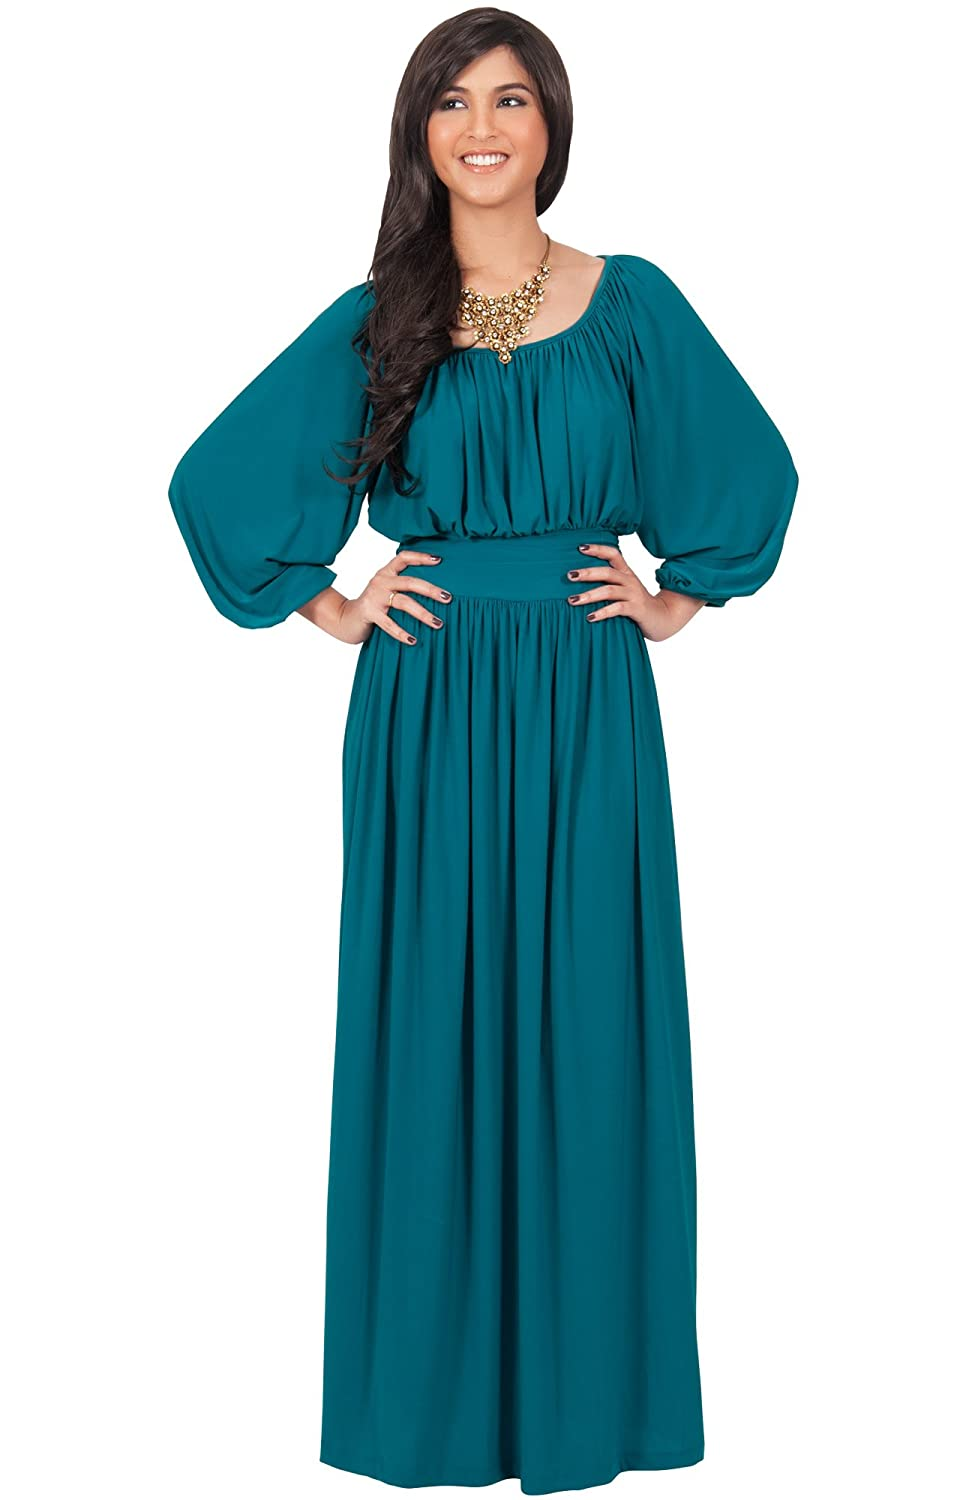 6d7c134aa457 This beautiful vintage inspired peasant styled maxi dress with sleeves is  very elegant and the perfect outfit for fall. The material is made from high  ...